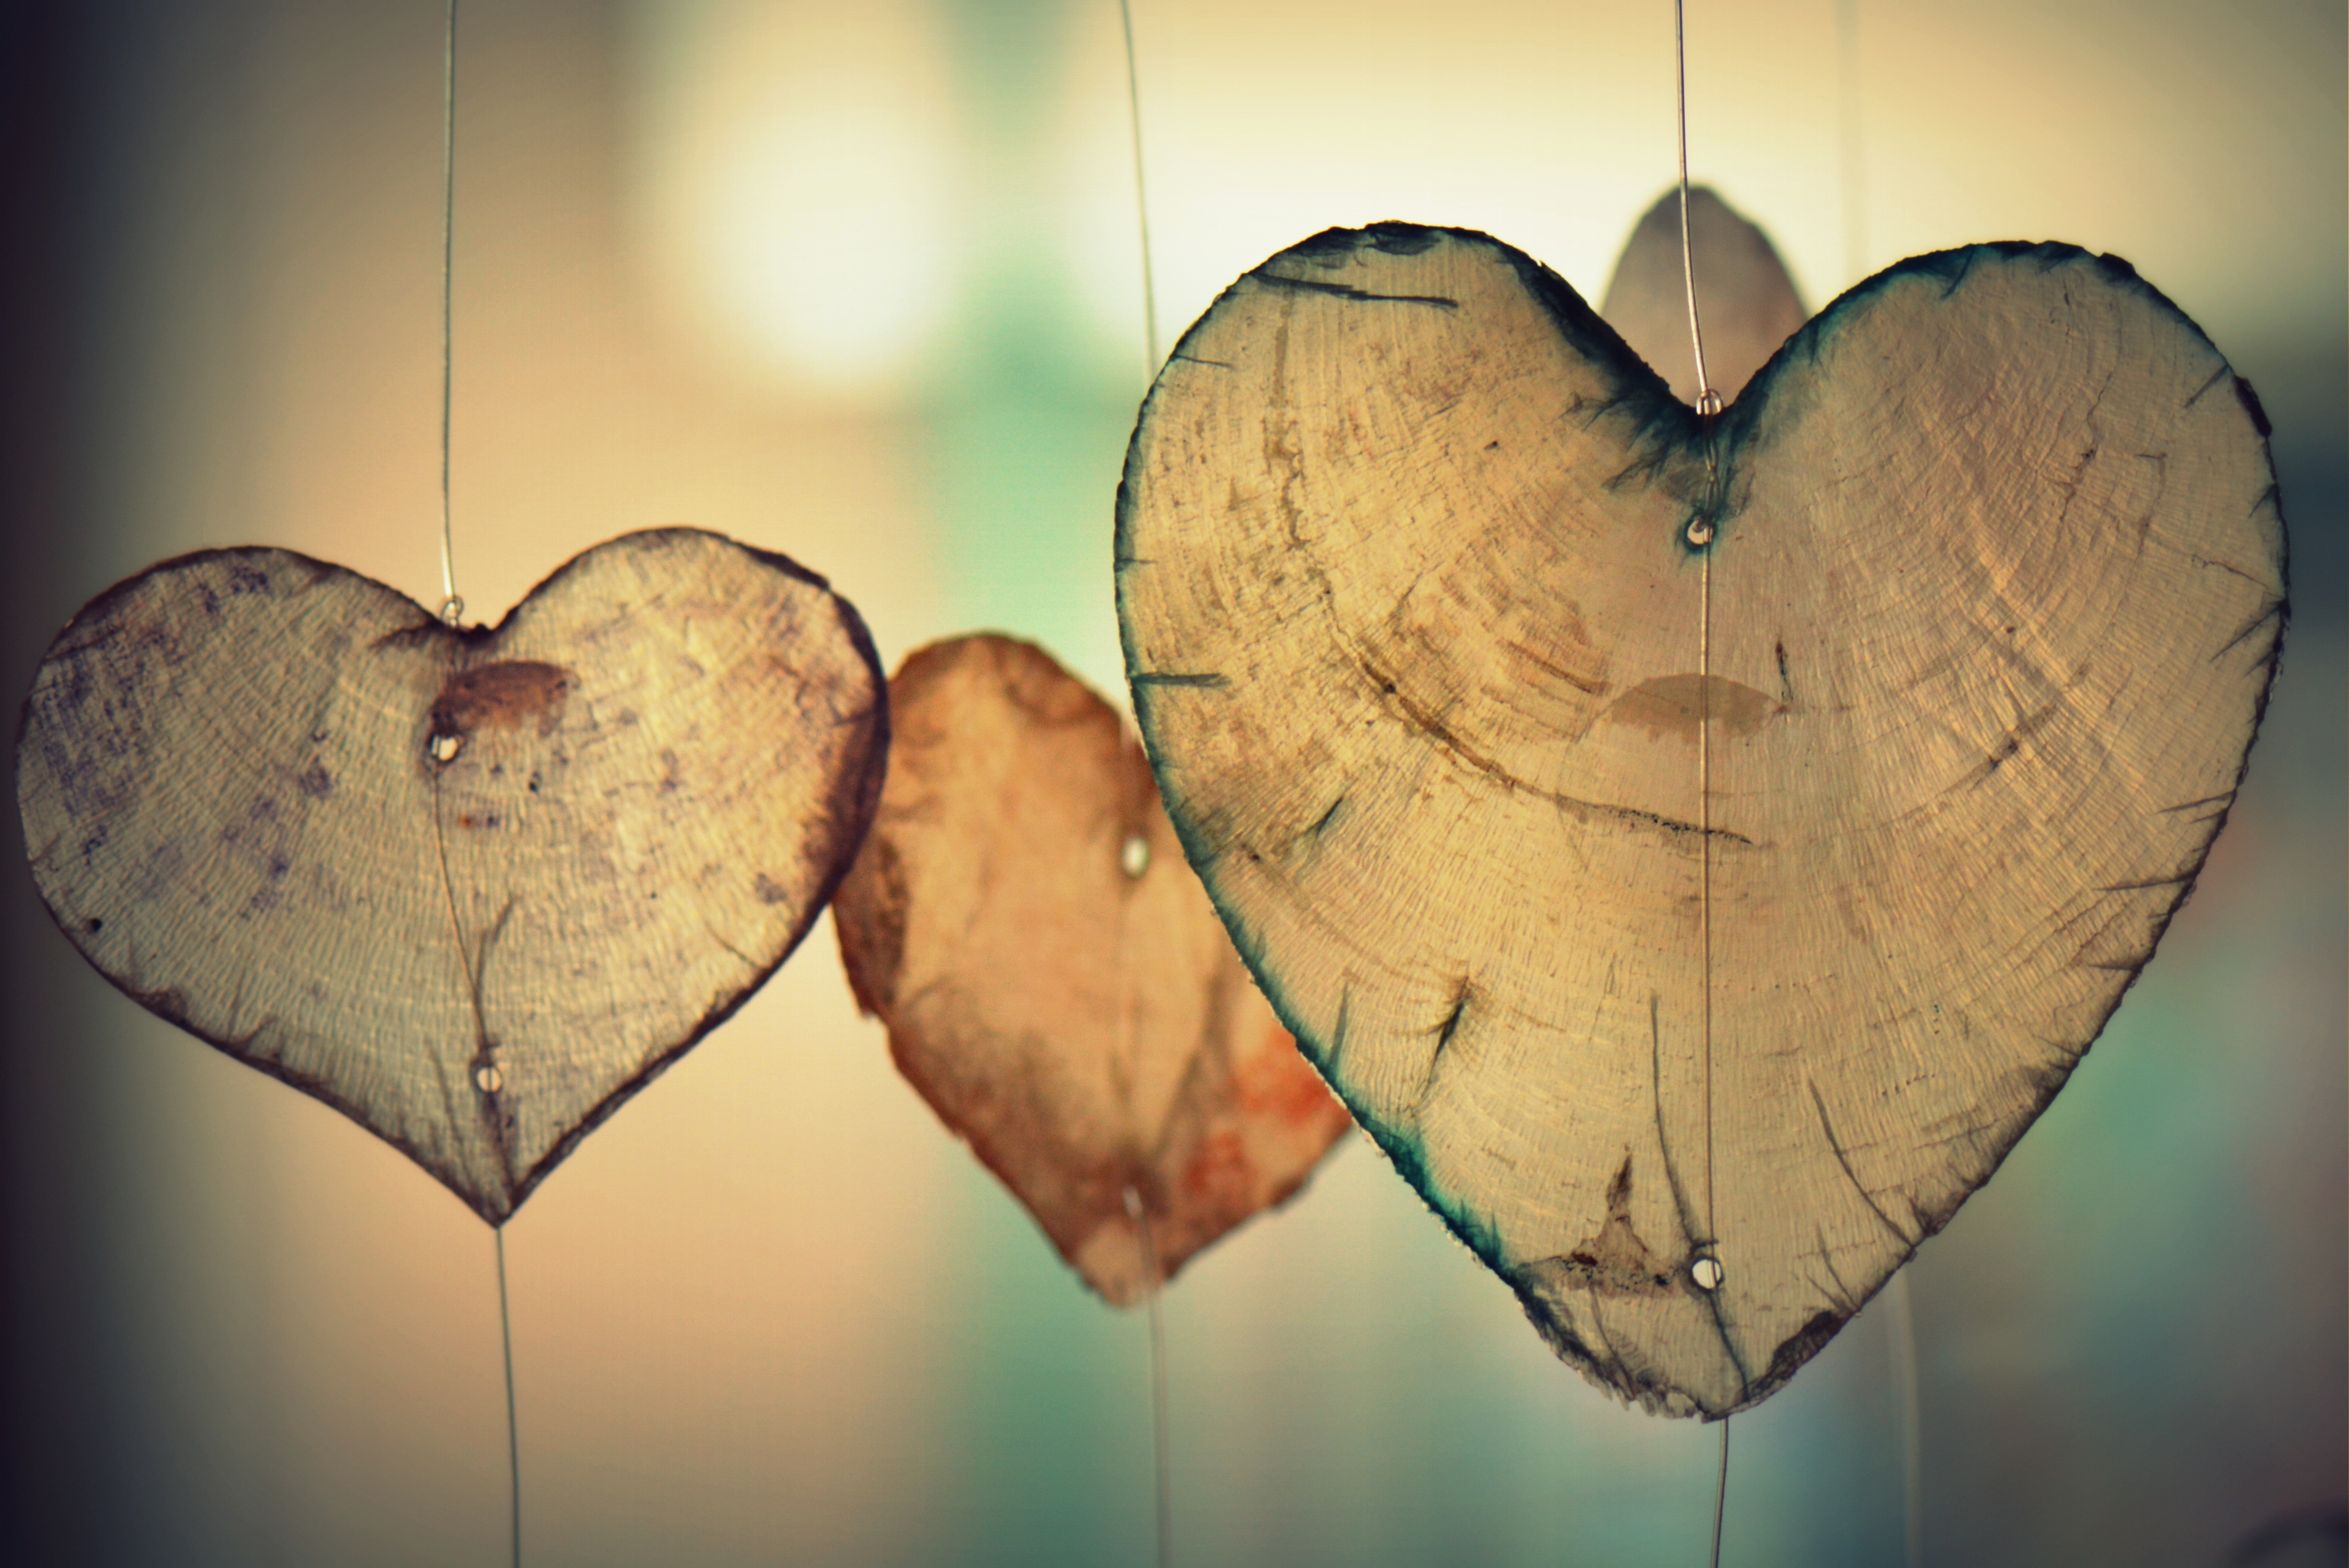 Brown Heart Shaped Hanging Decor, Valentine, Romantic, Romance, Heart, HQ Photo